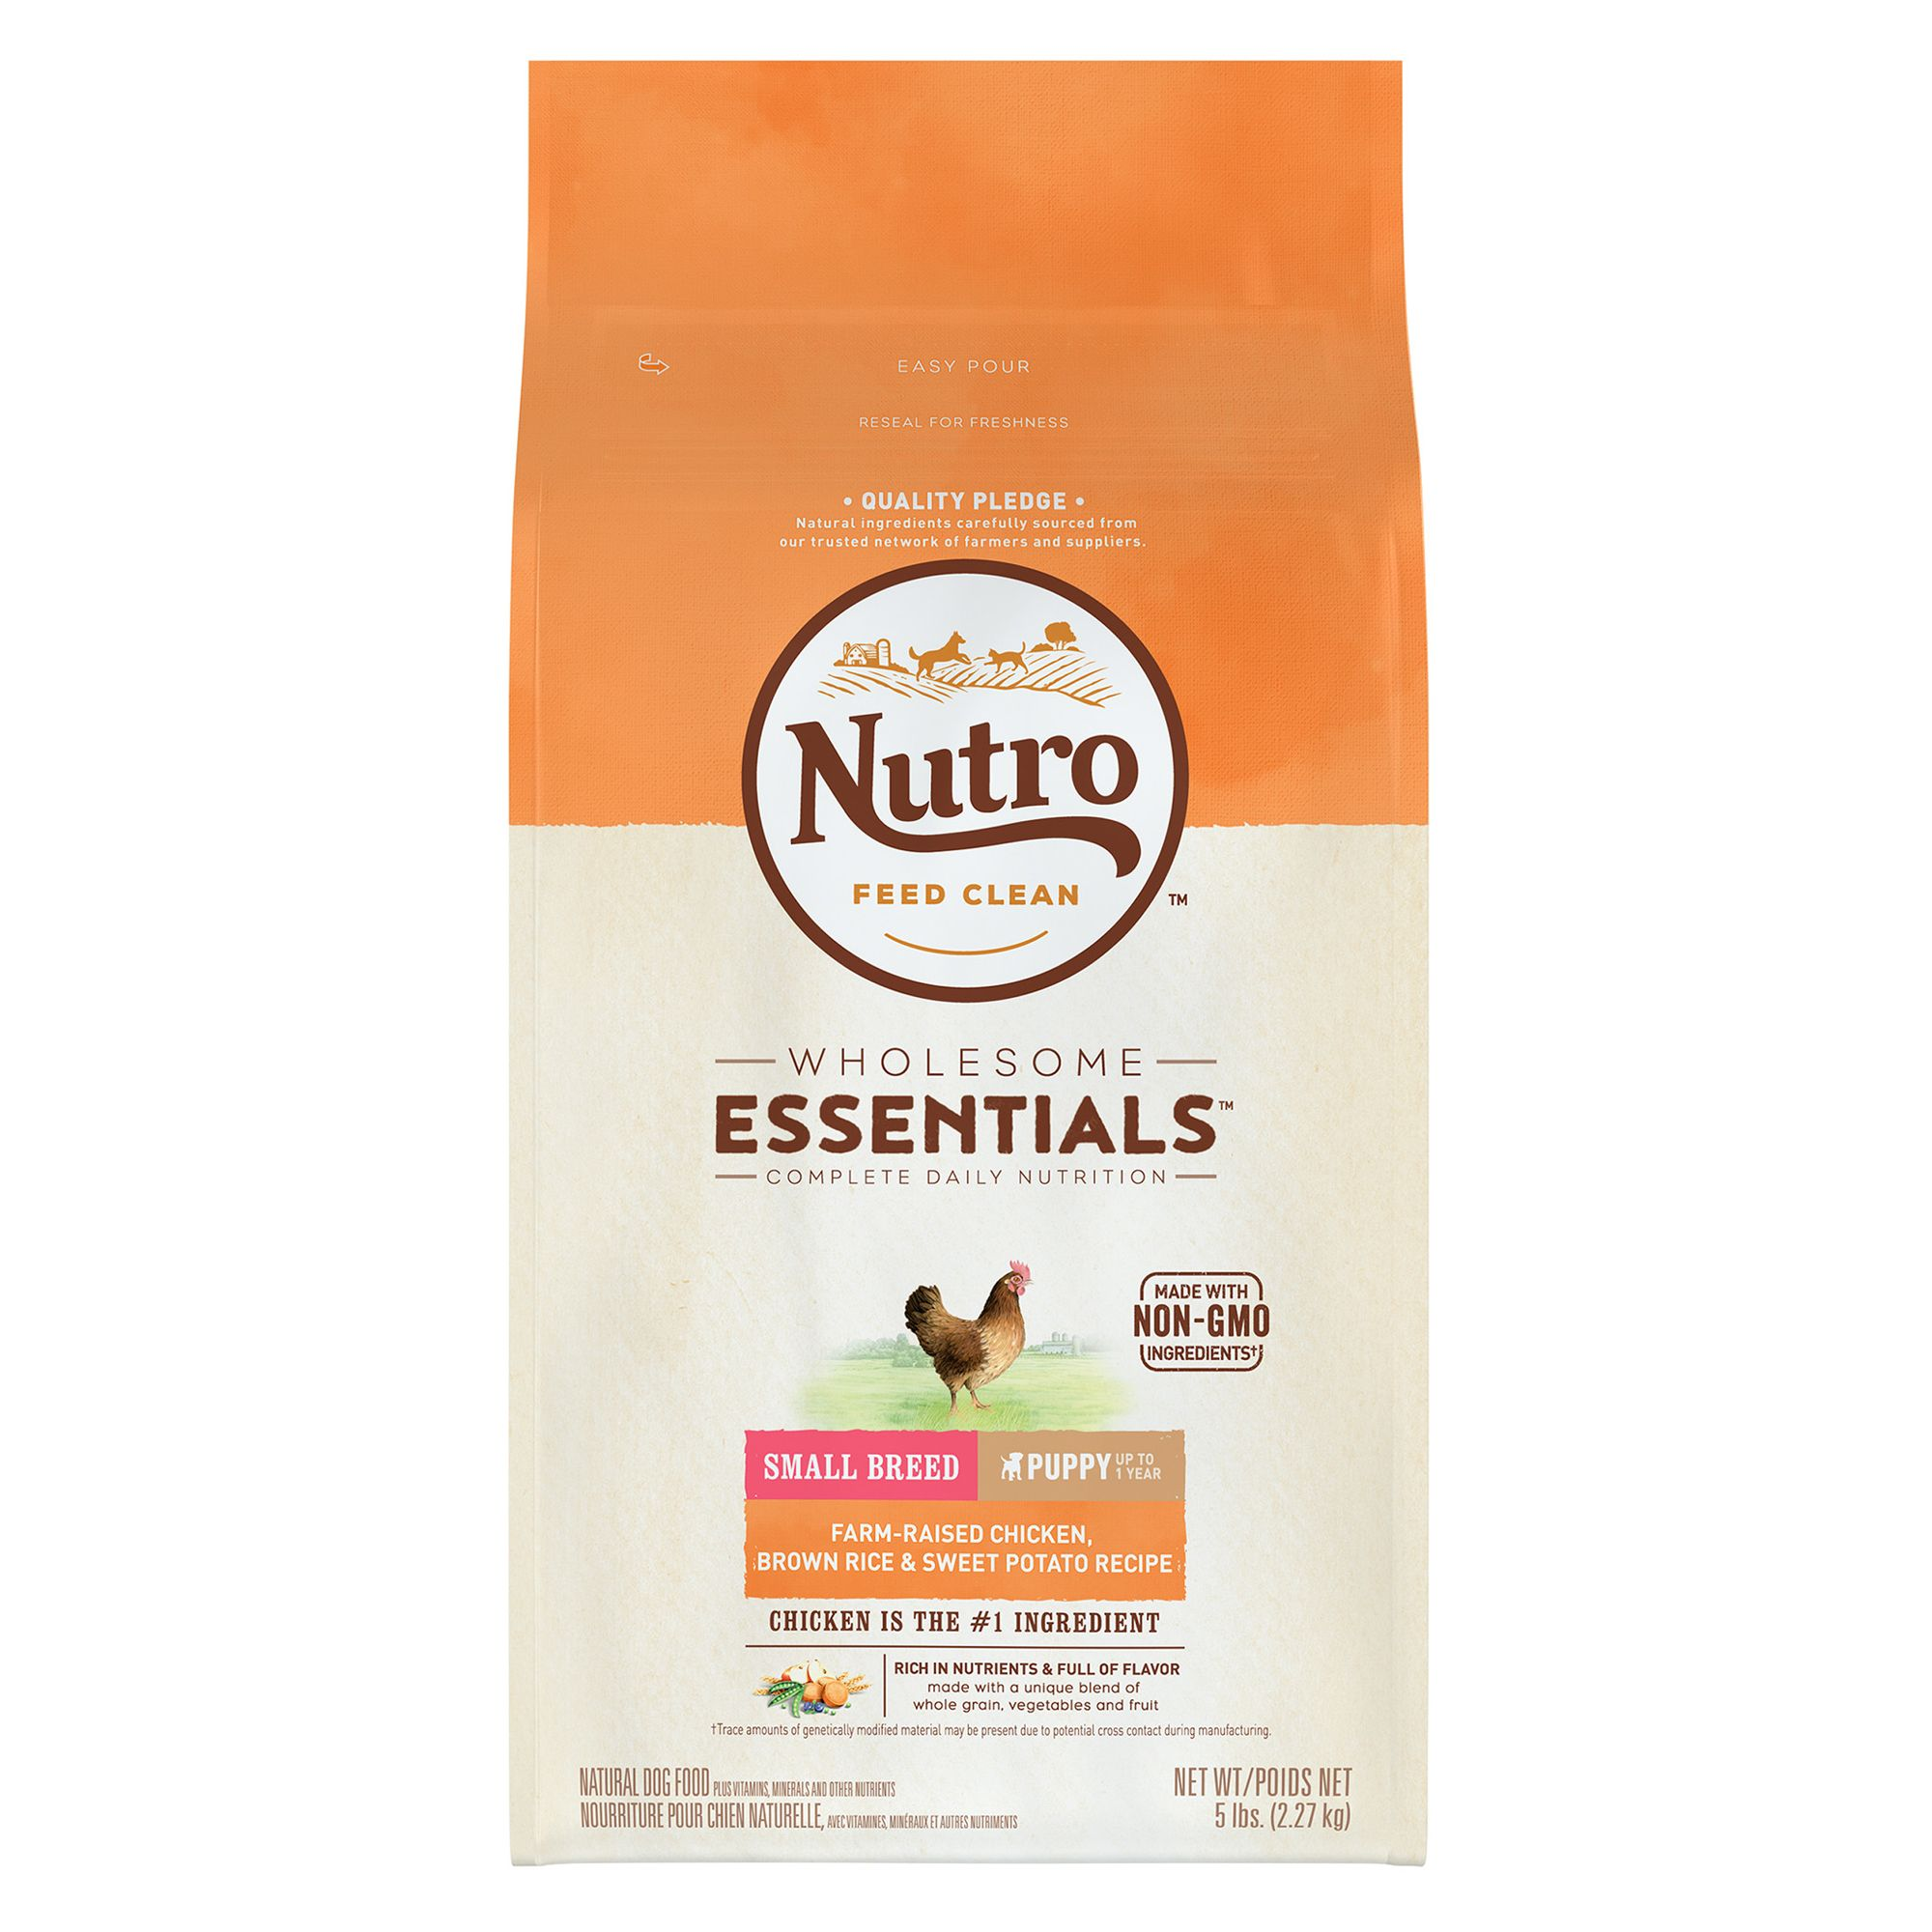 Nutro Wholesome Essentials Small Breed Puppy Food Natural Chicken Brown Rice And Sweet Pota Size 5 Lb